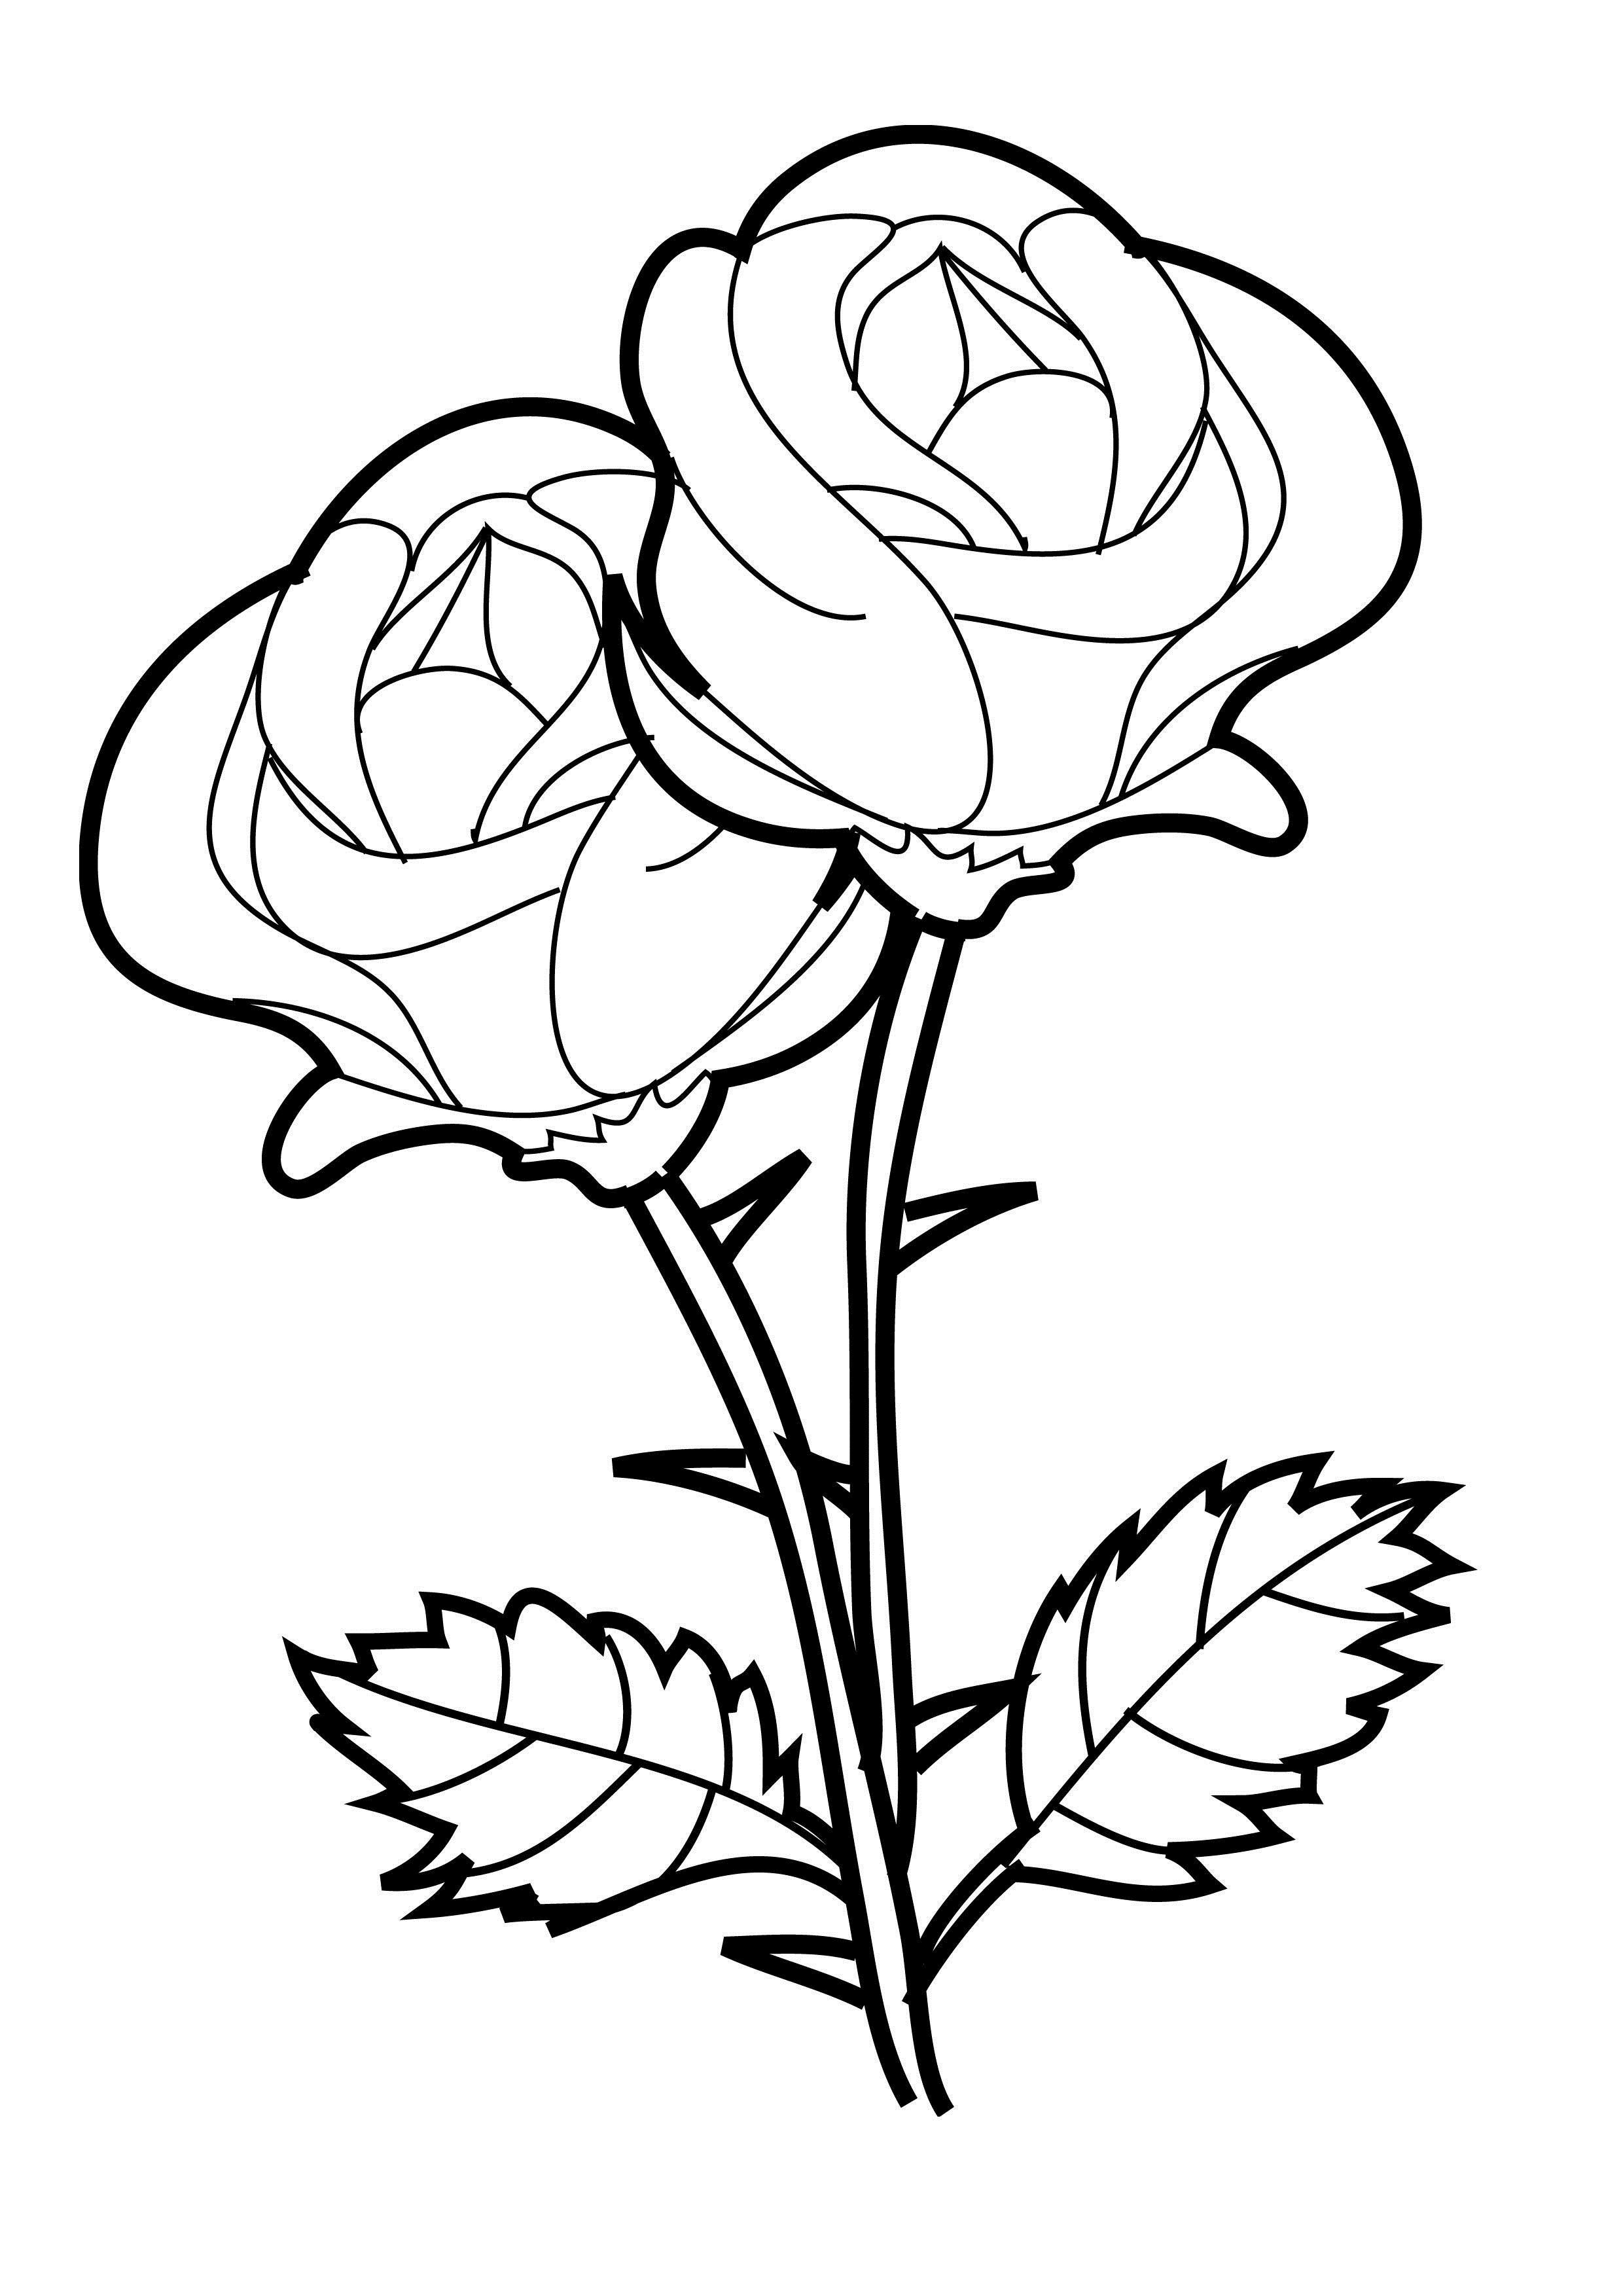 coloring sheet rose flower coloring pages pretty rose coloring page free clip art rose sheet flower coloring coloring pages